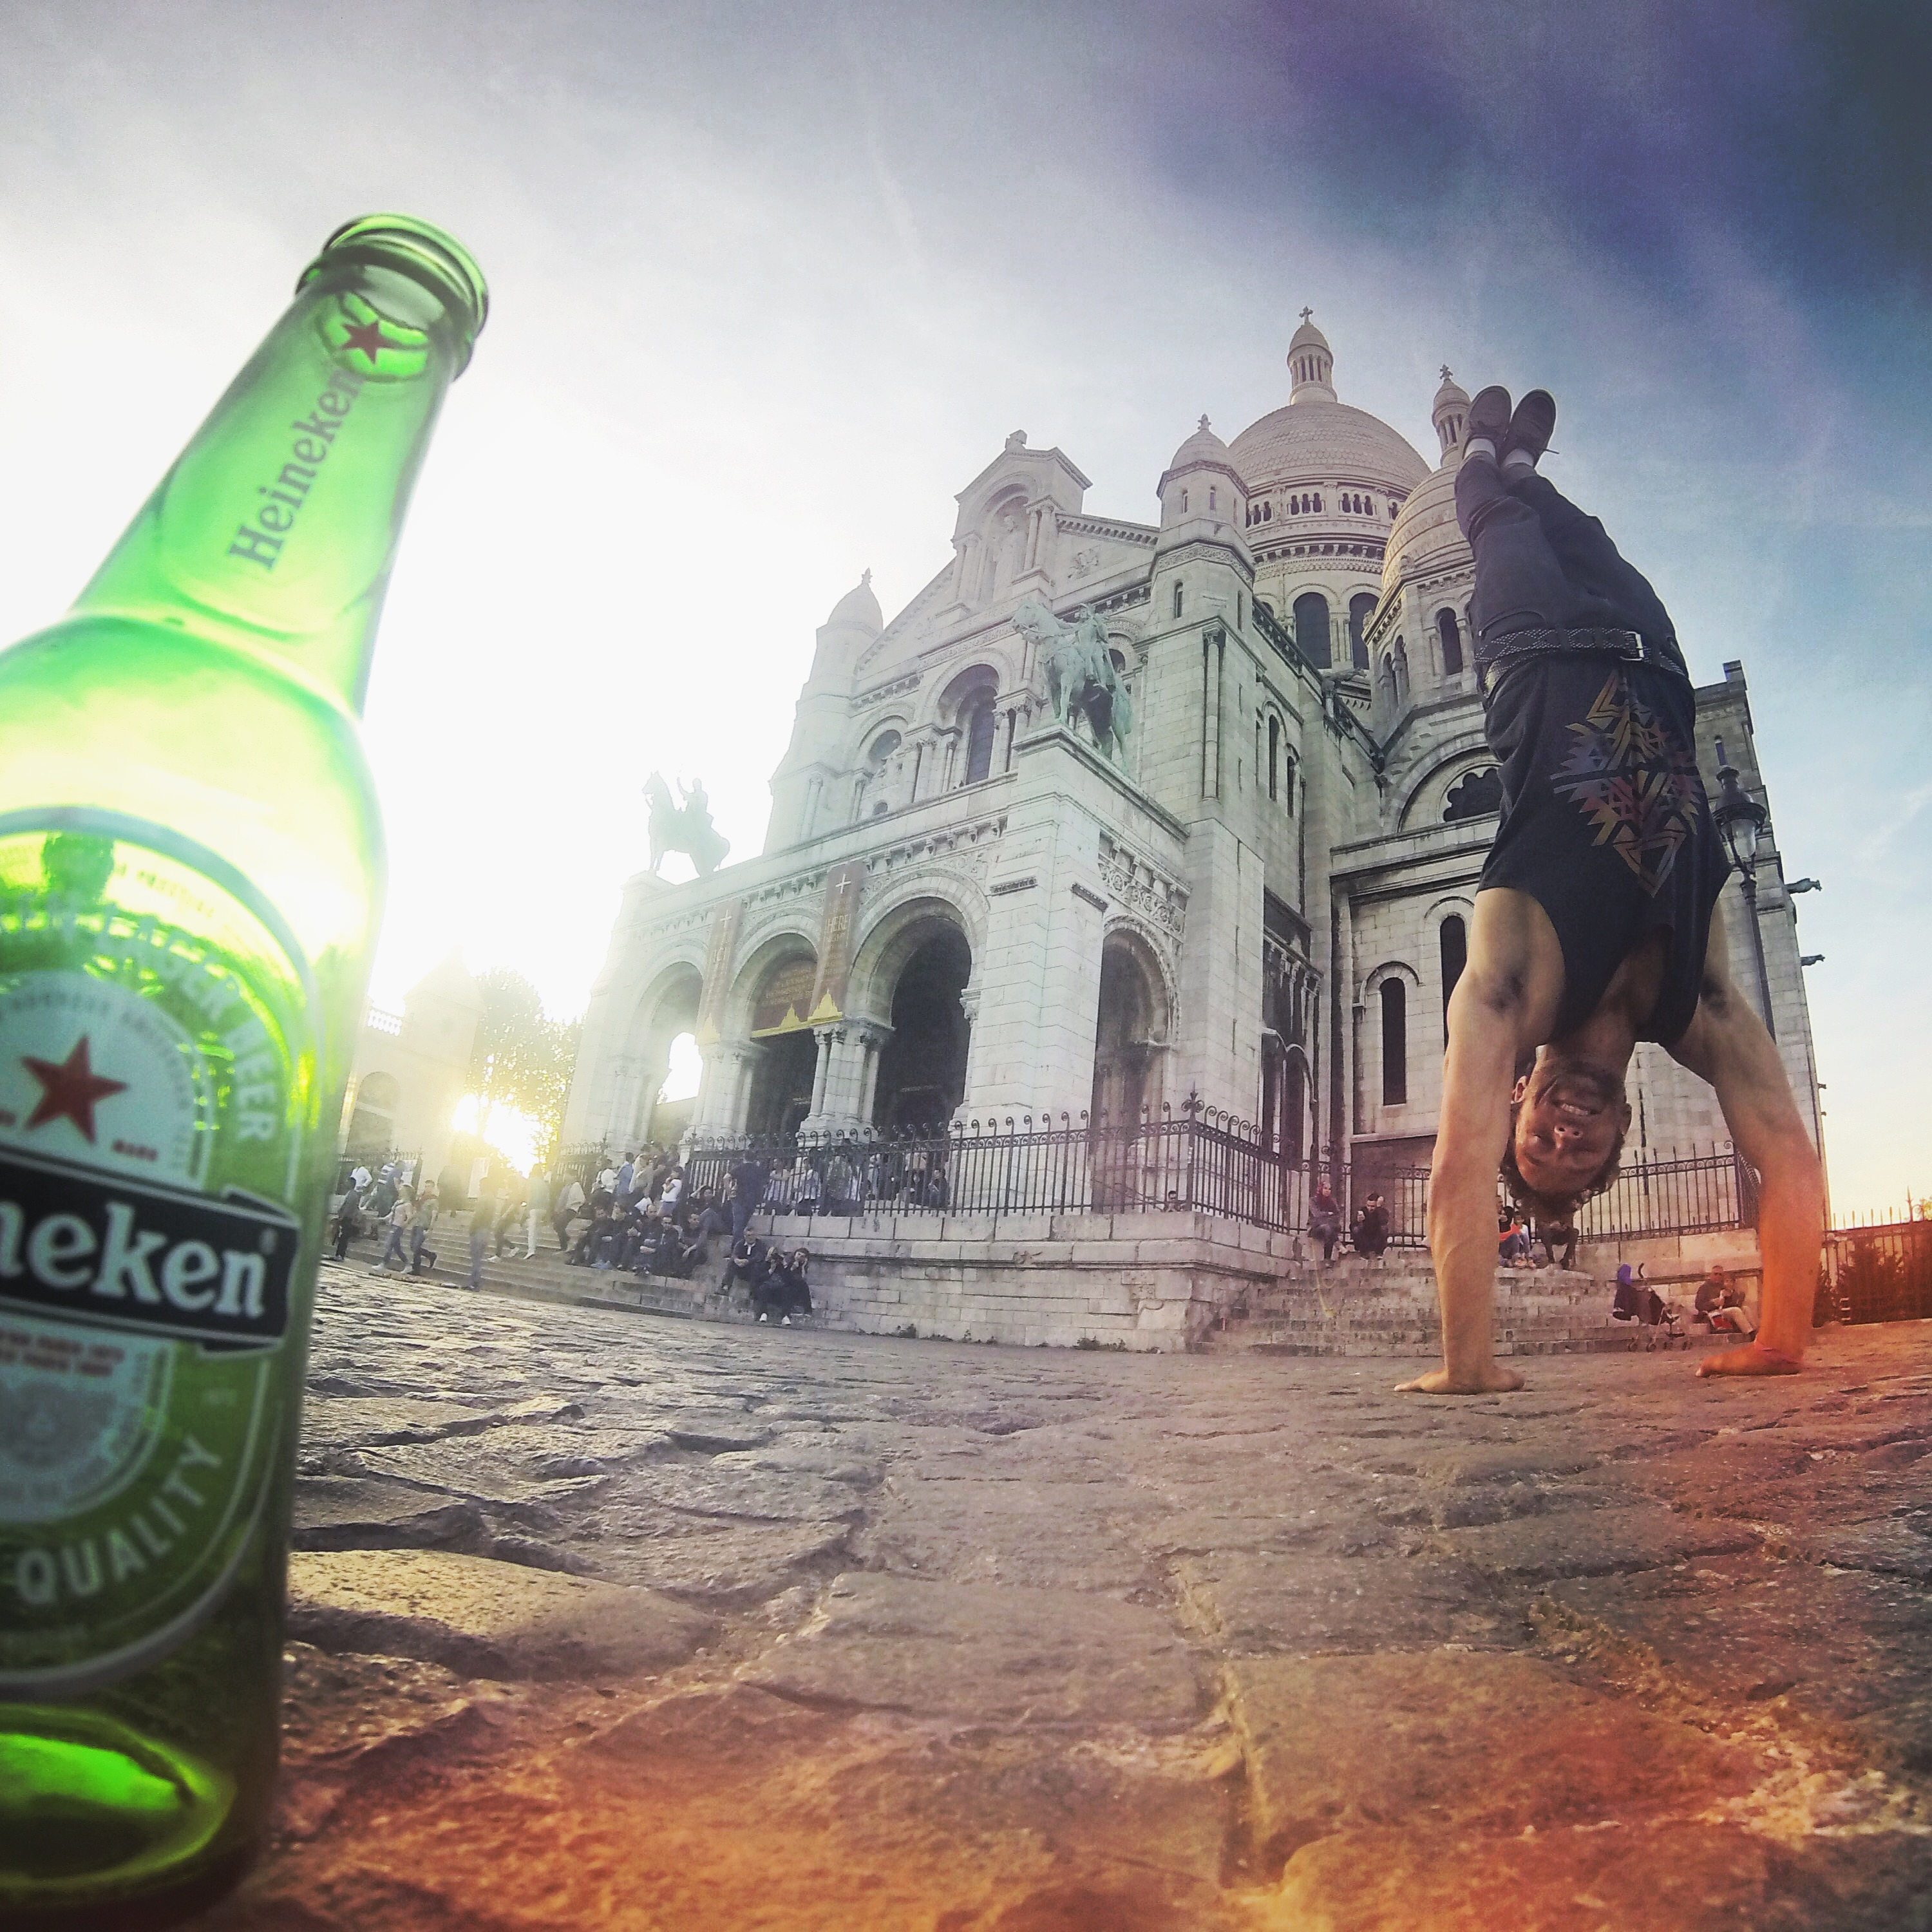 Shane doing a handstand with a beer in front of Sacred Heart church